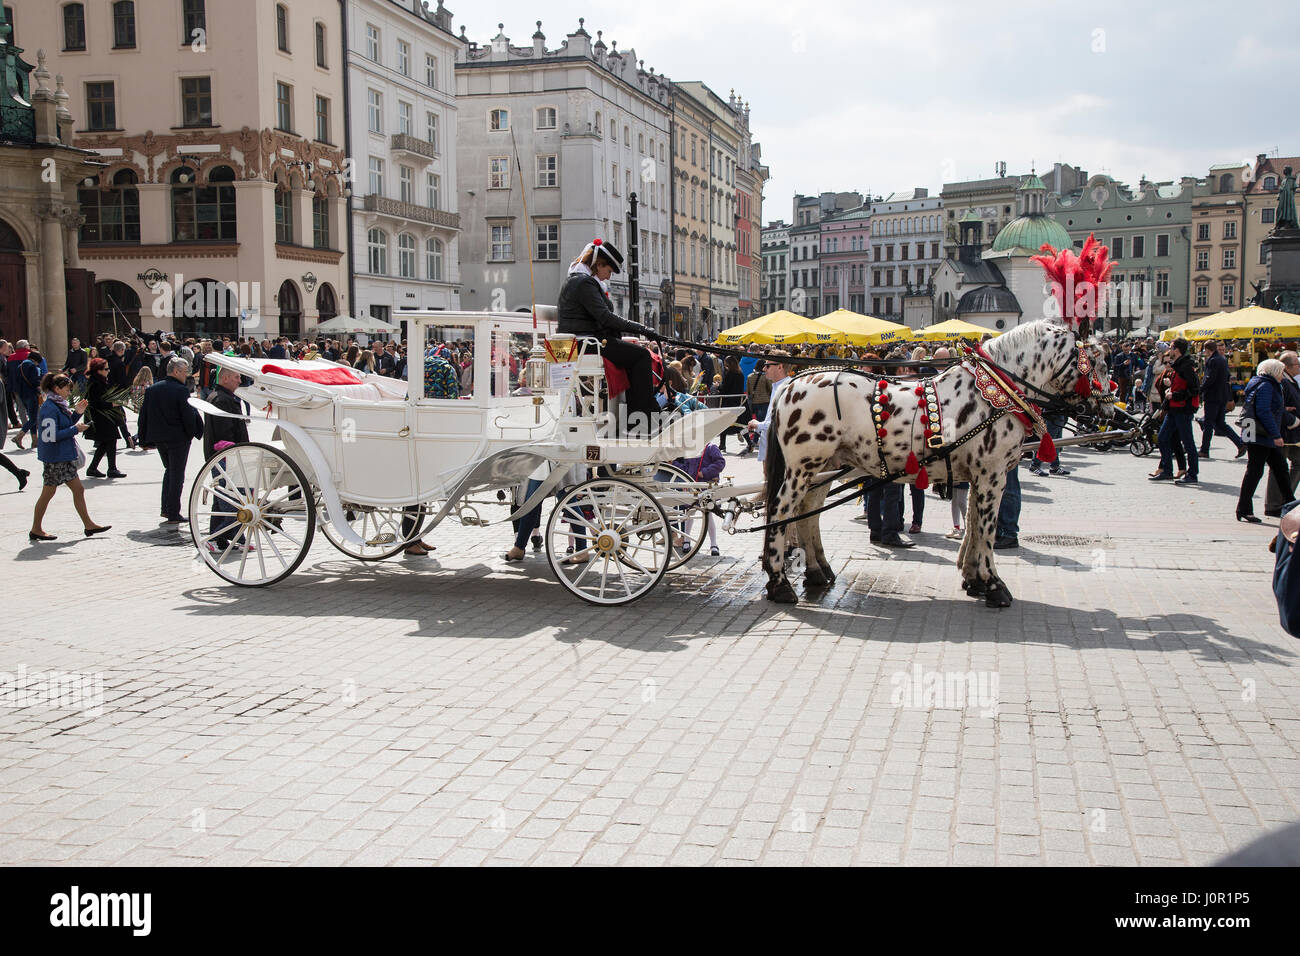 Chaise And Four Carriage - Horse and carriage tours in the main square in krakow old town stock image